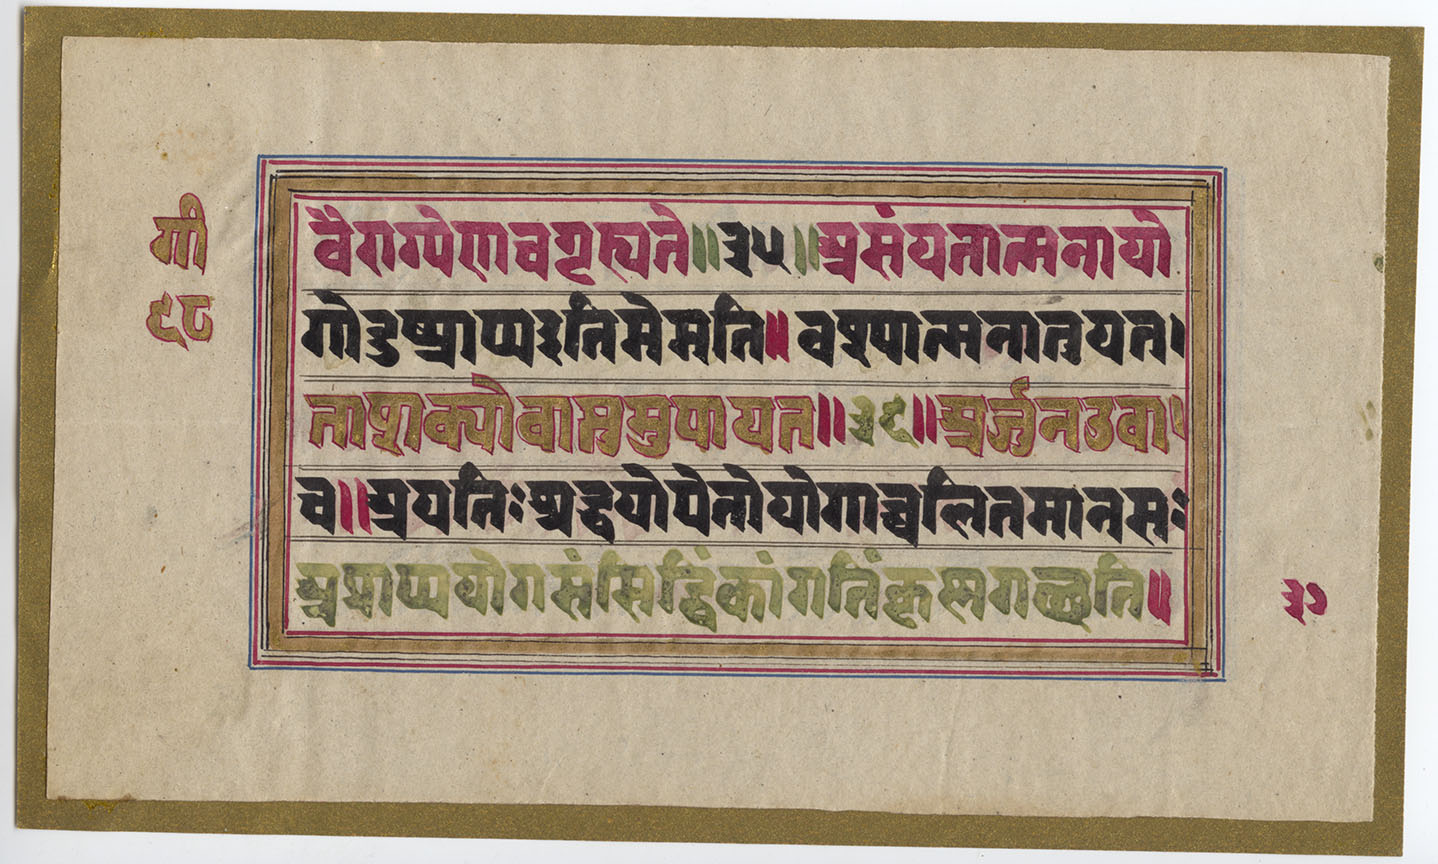 A leaf from Sanskrit Mahabharata. Source: Wikimedia commons